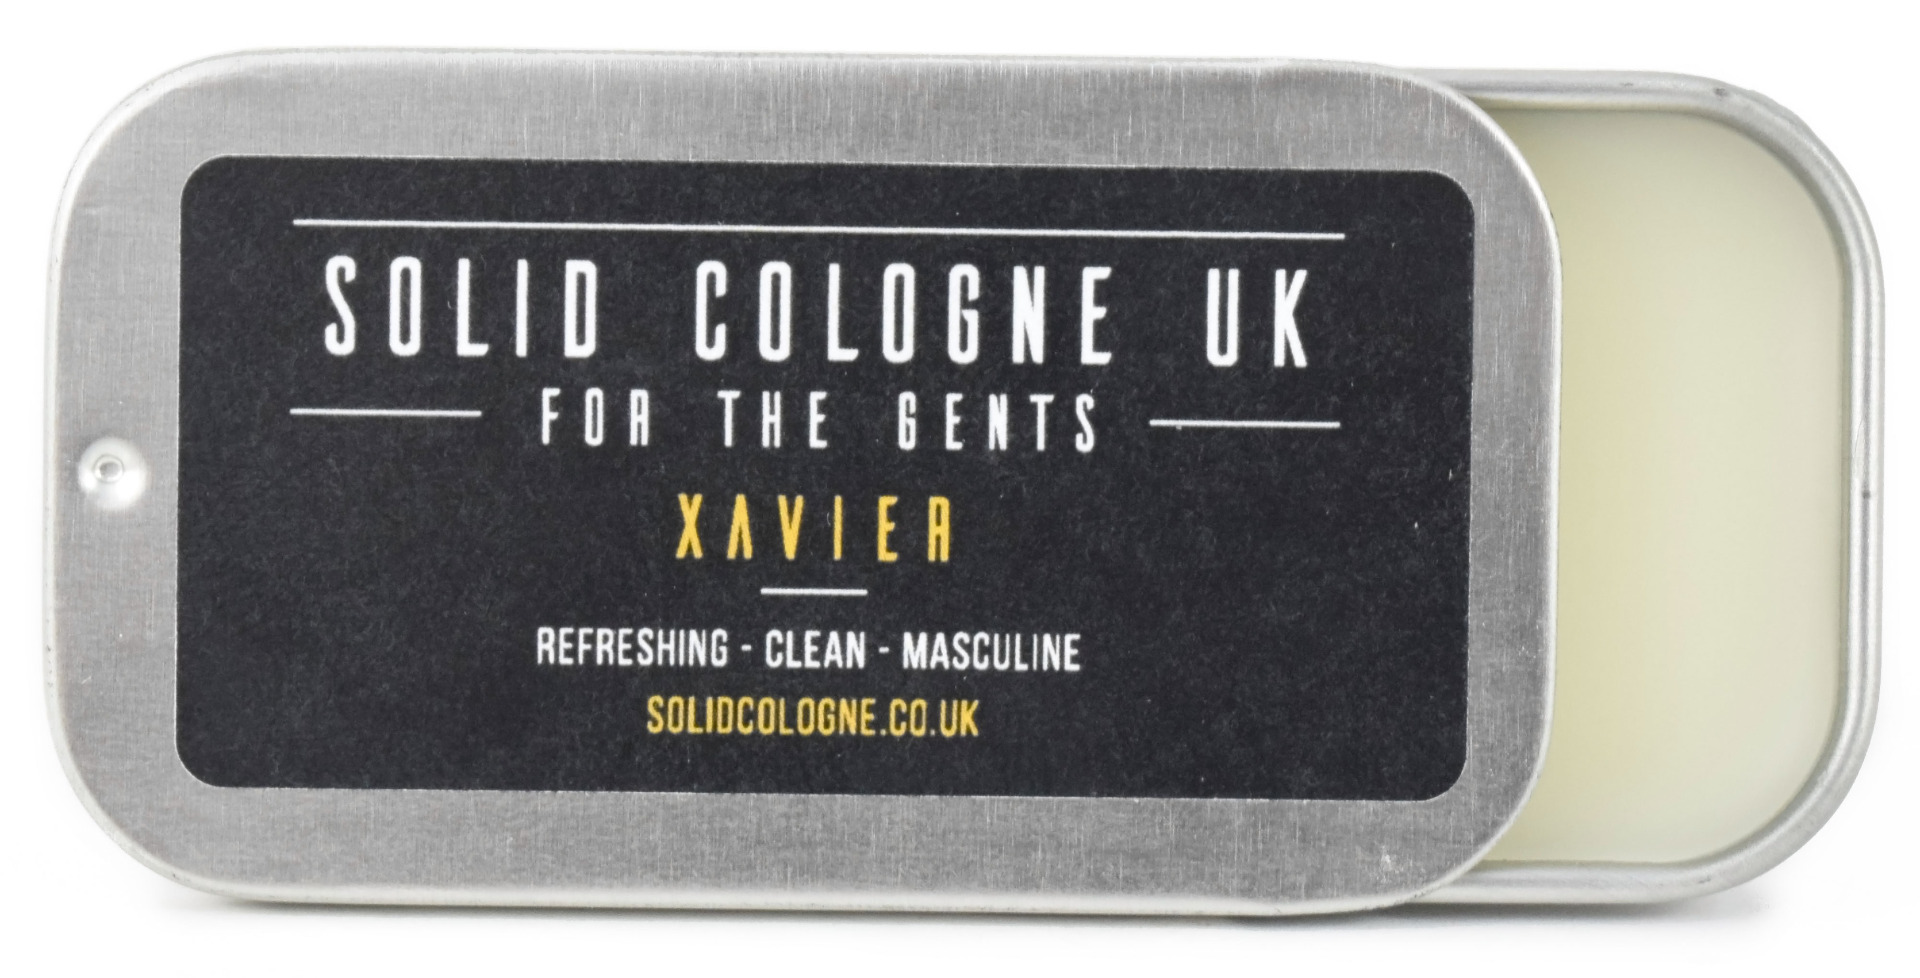 Solid Cologne Xavier Scent 0.5oz in Travel Tin